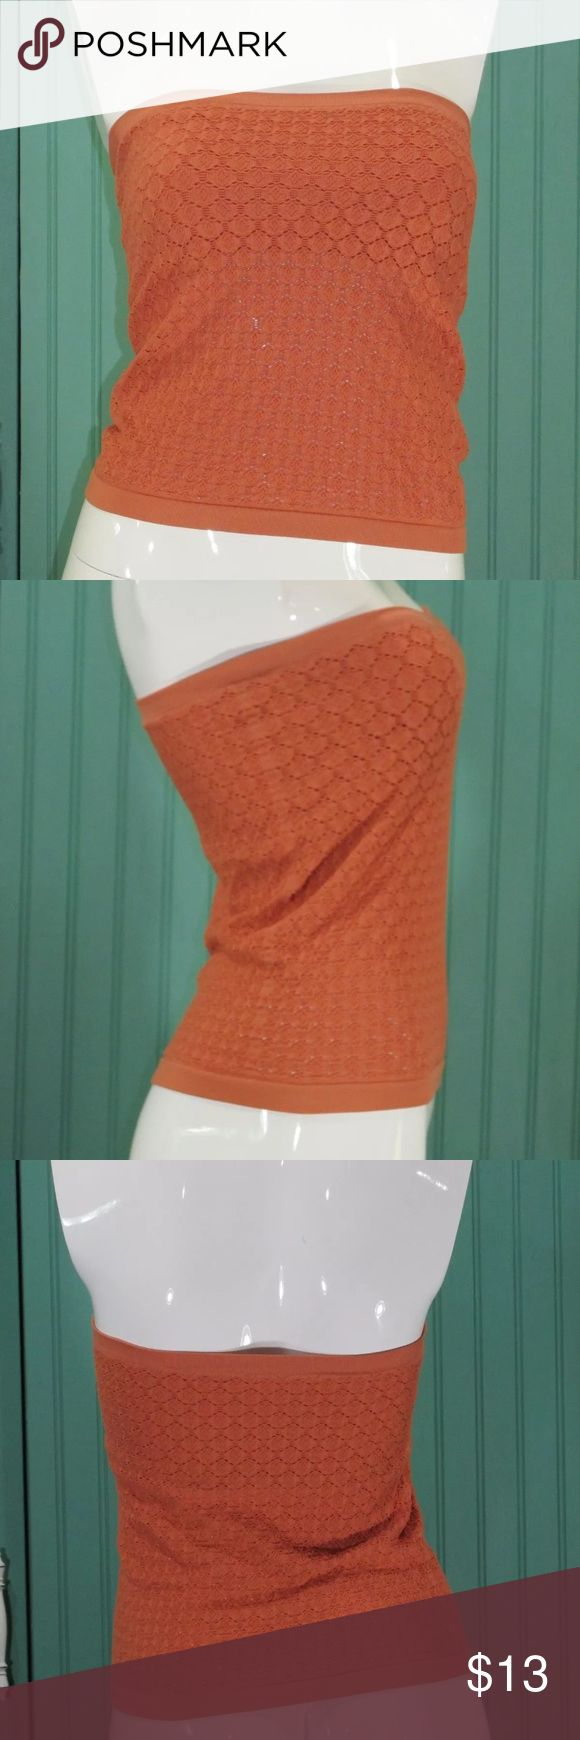 Free people intimately stretch coral tube top M/L Great condition, no flaws. Can also fit a size small Free People Tops